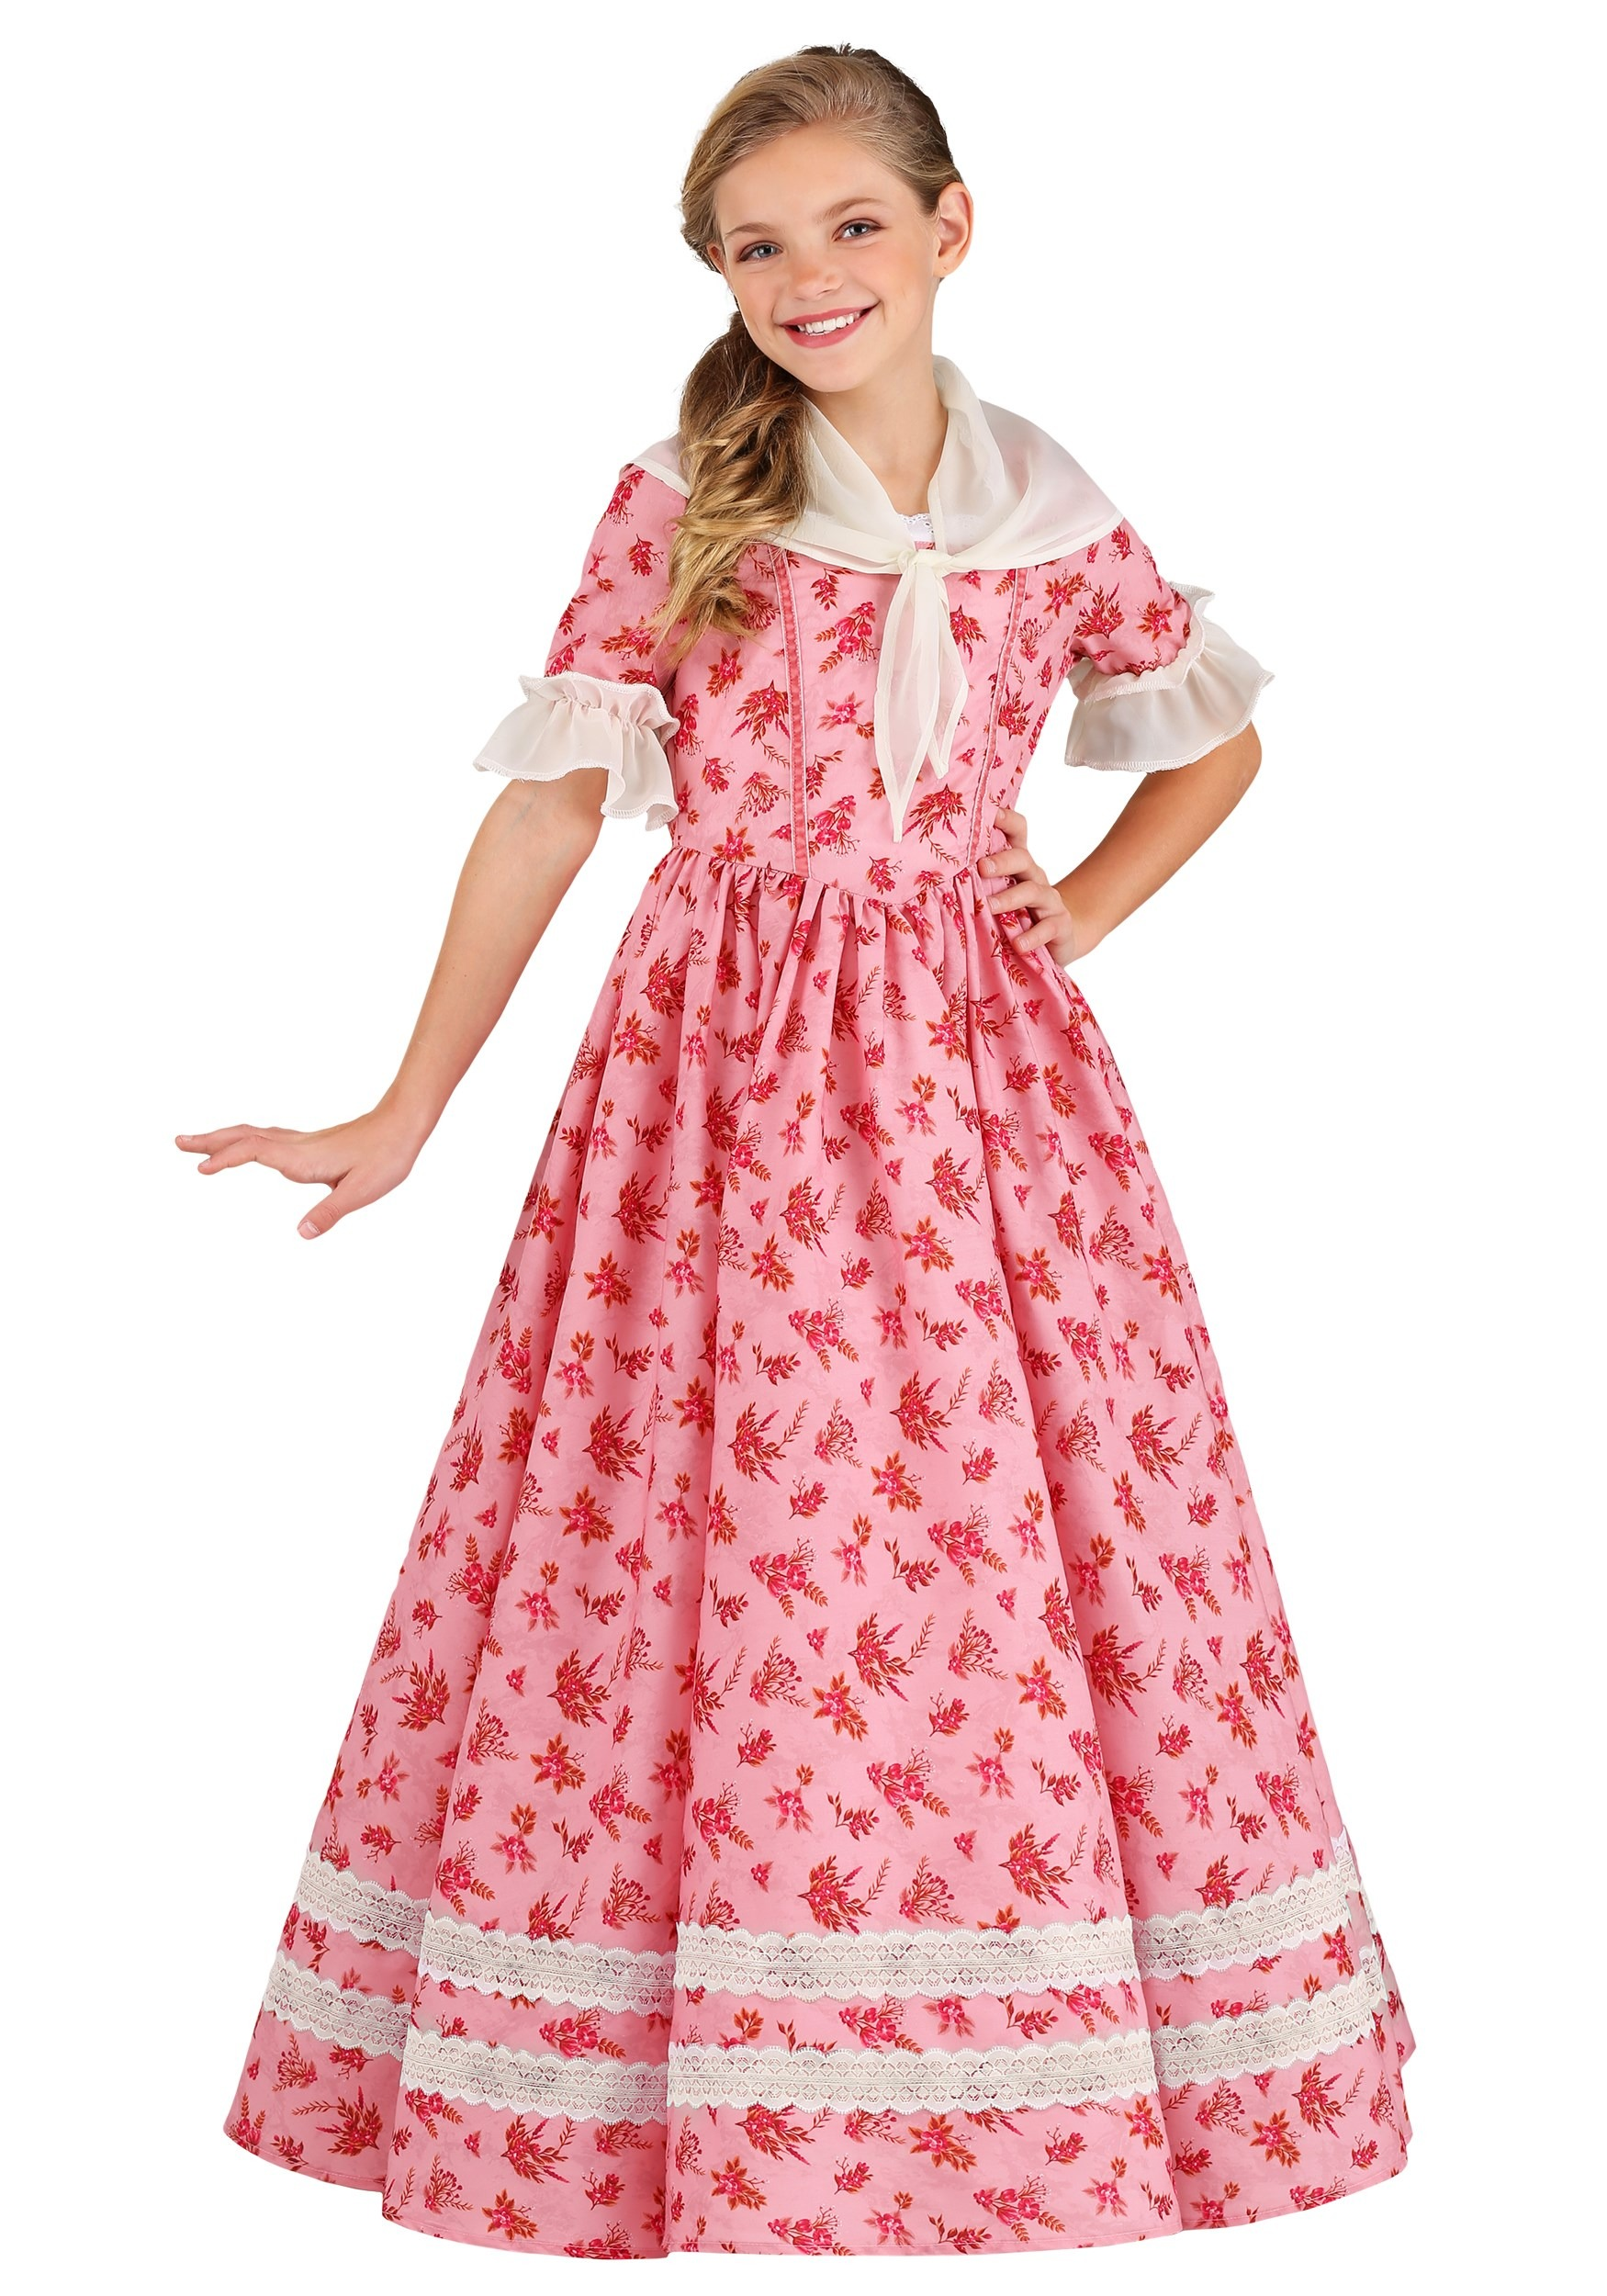 Lovely Southern Belle Kid's Costume